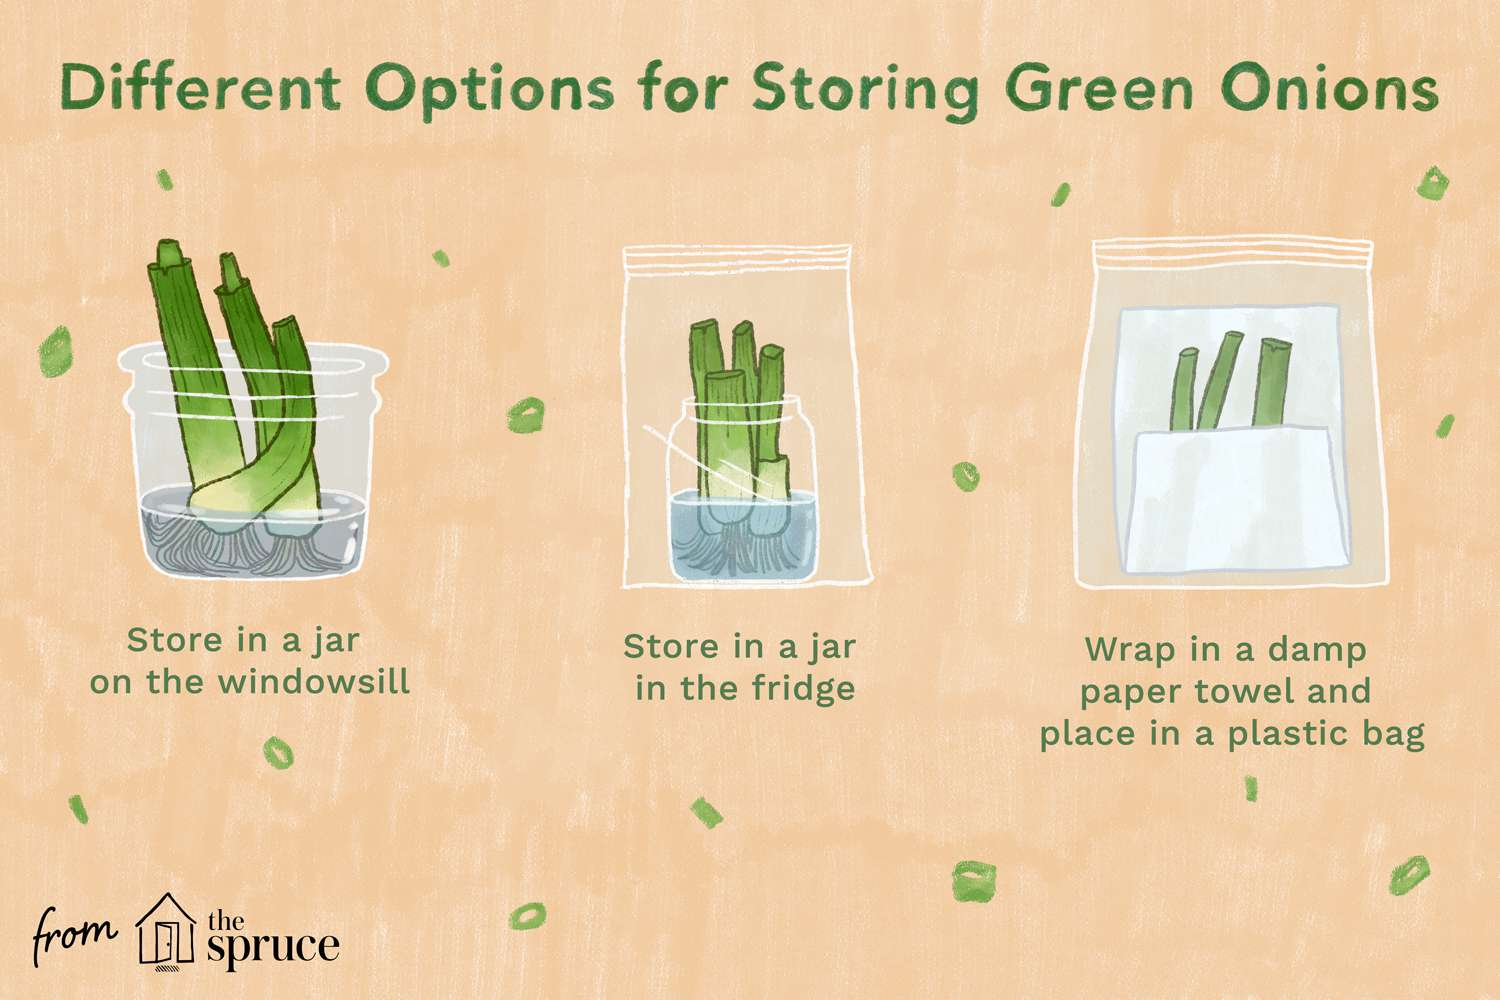 illustration showing how to store green onions